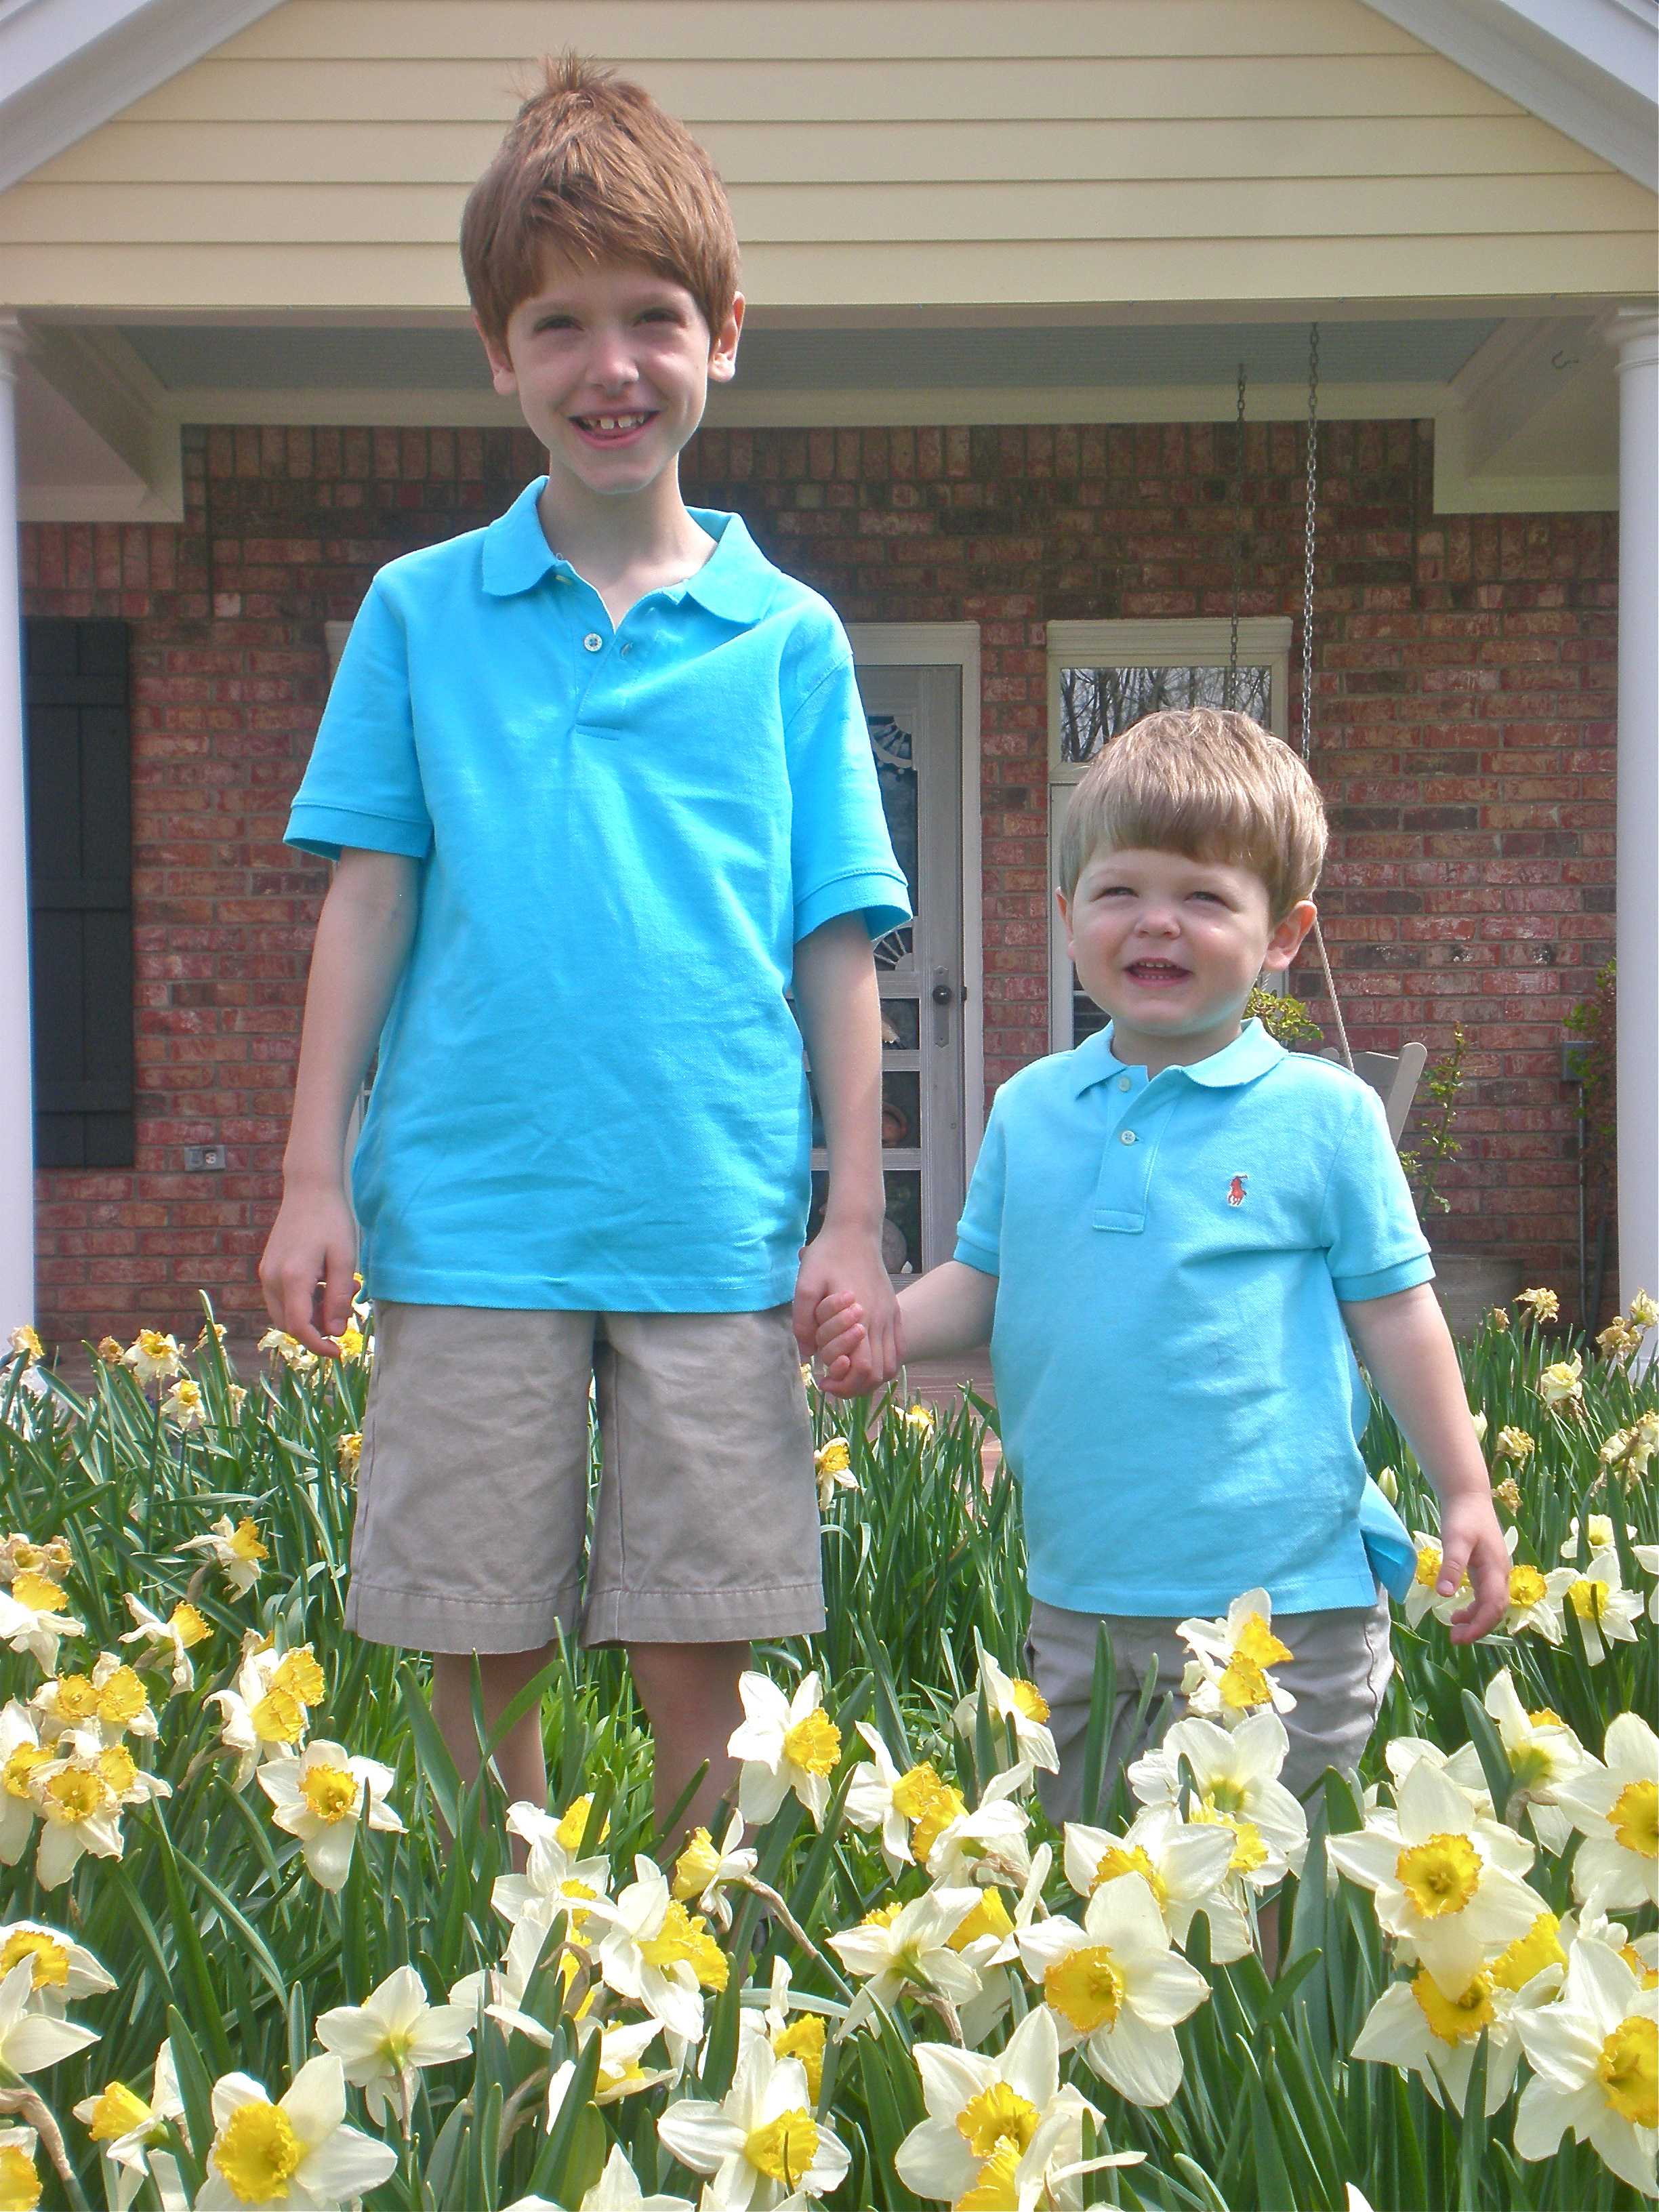 Image search: Little Boys And Their Penis